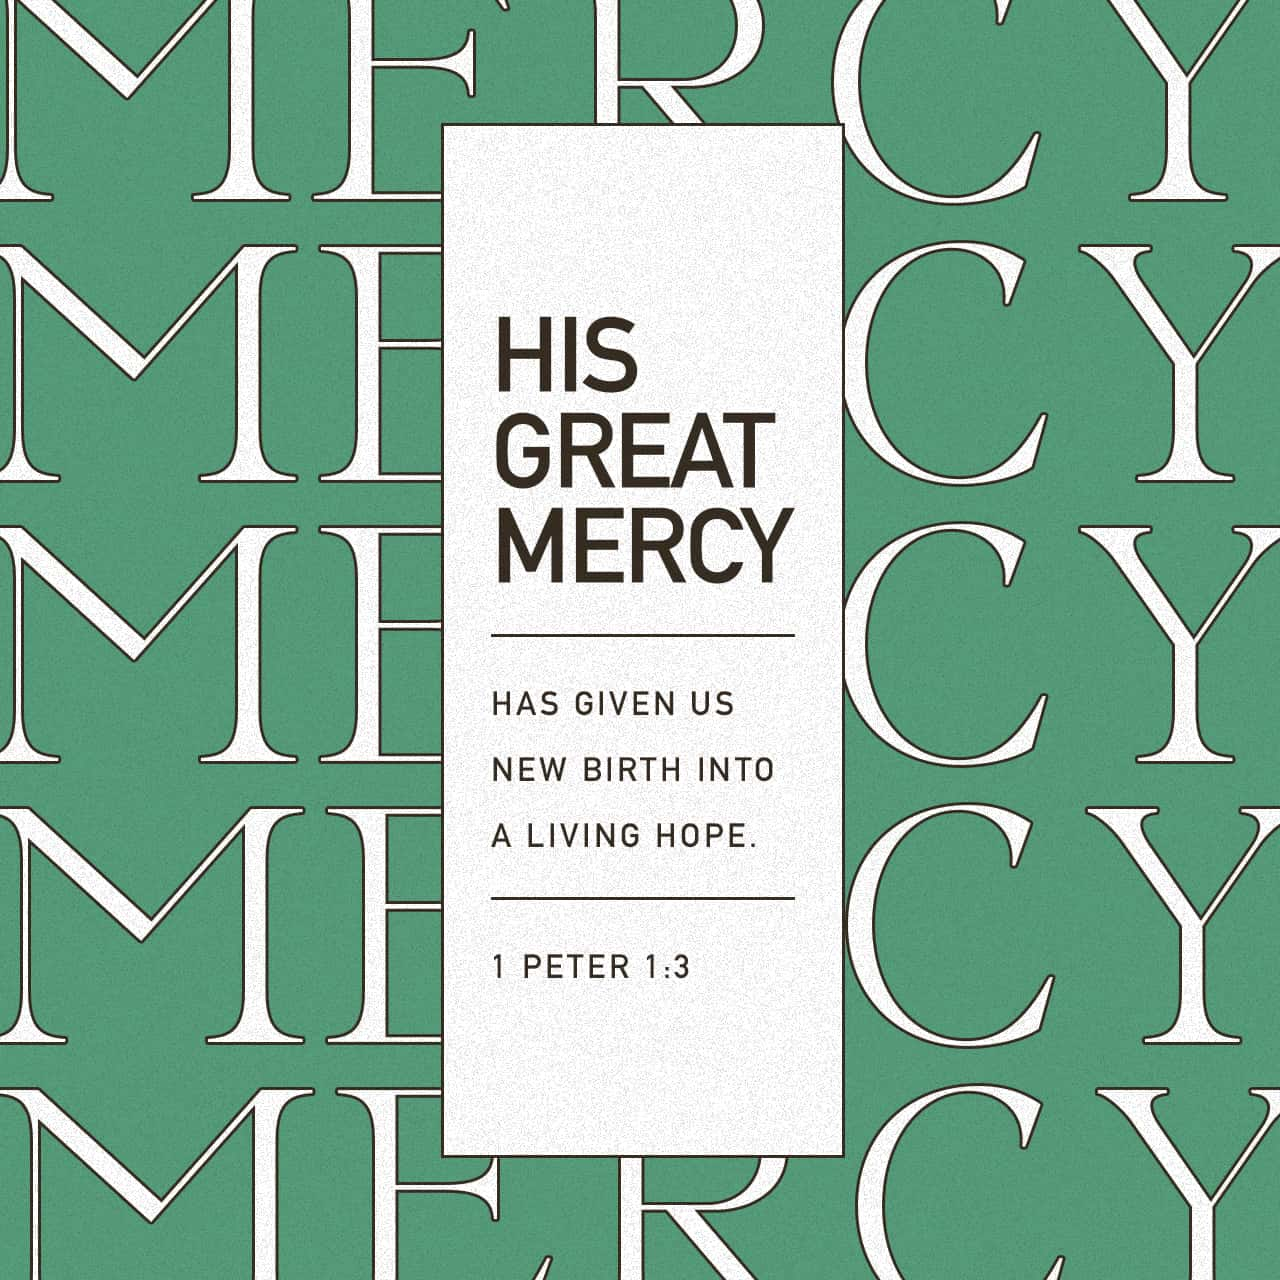 His great mercy has given us new birth into a living hope - 1 Peter 1:3 - Verse Image